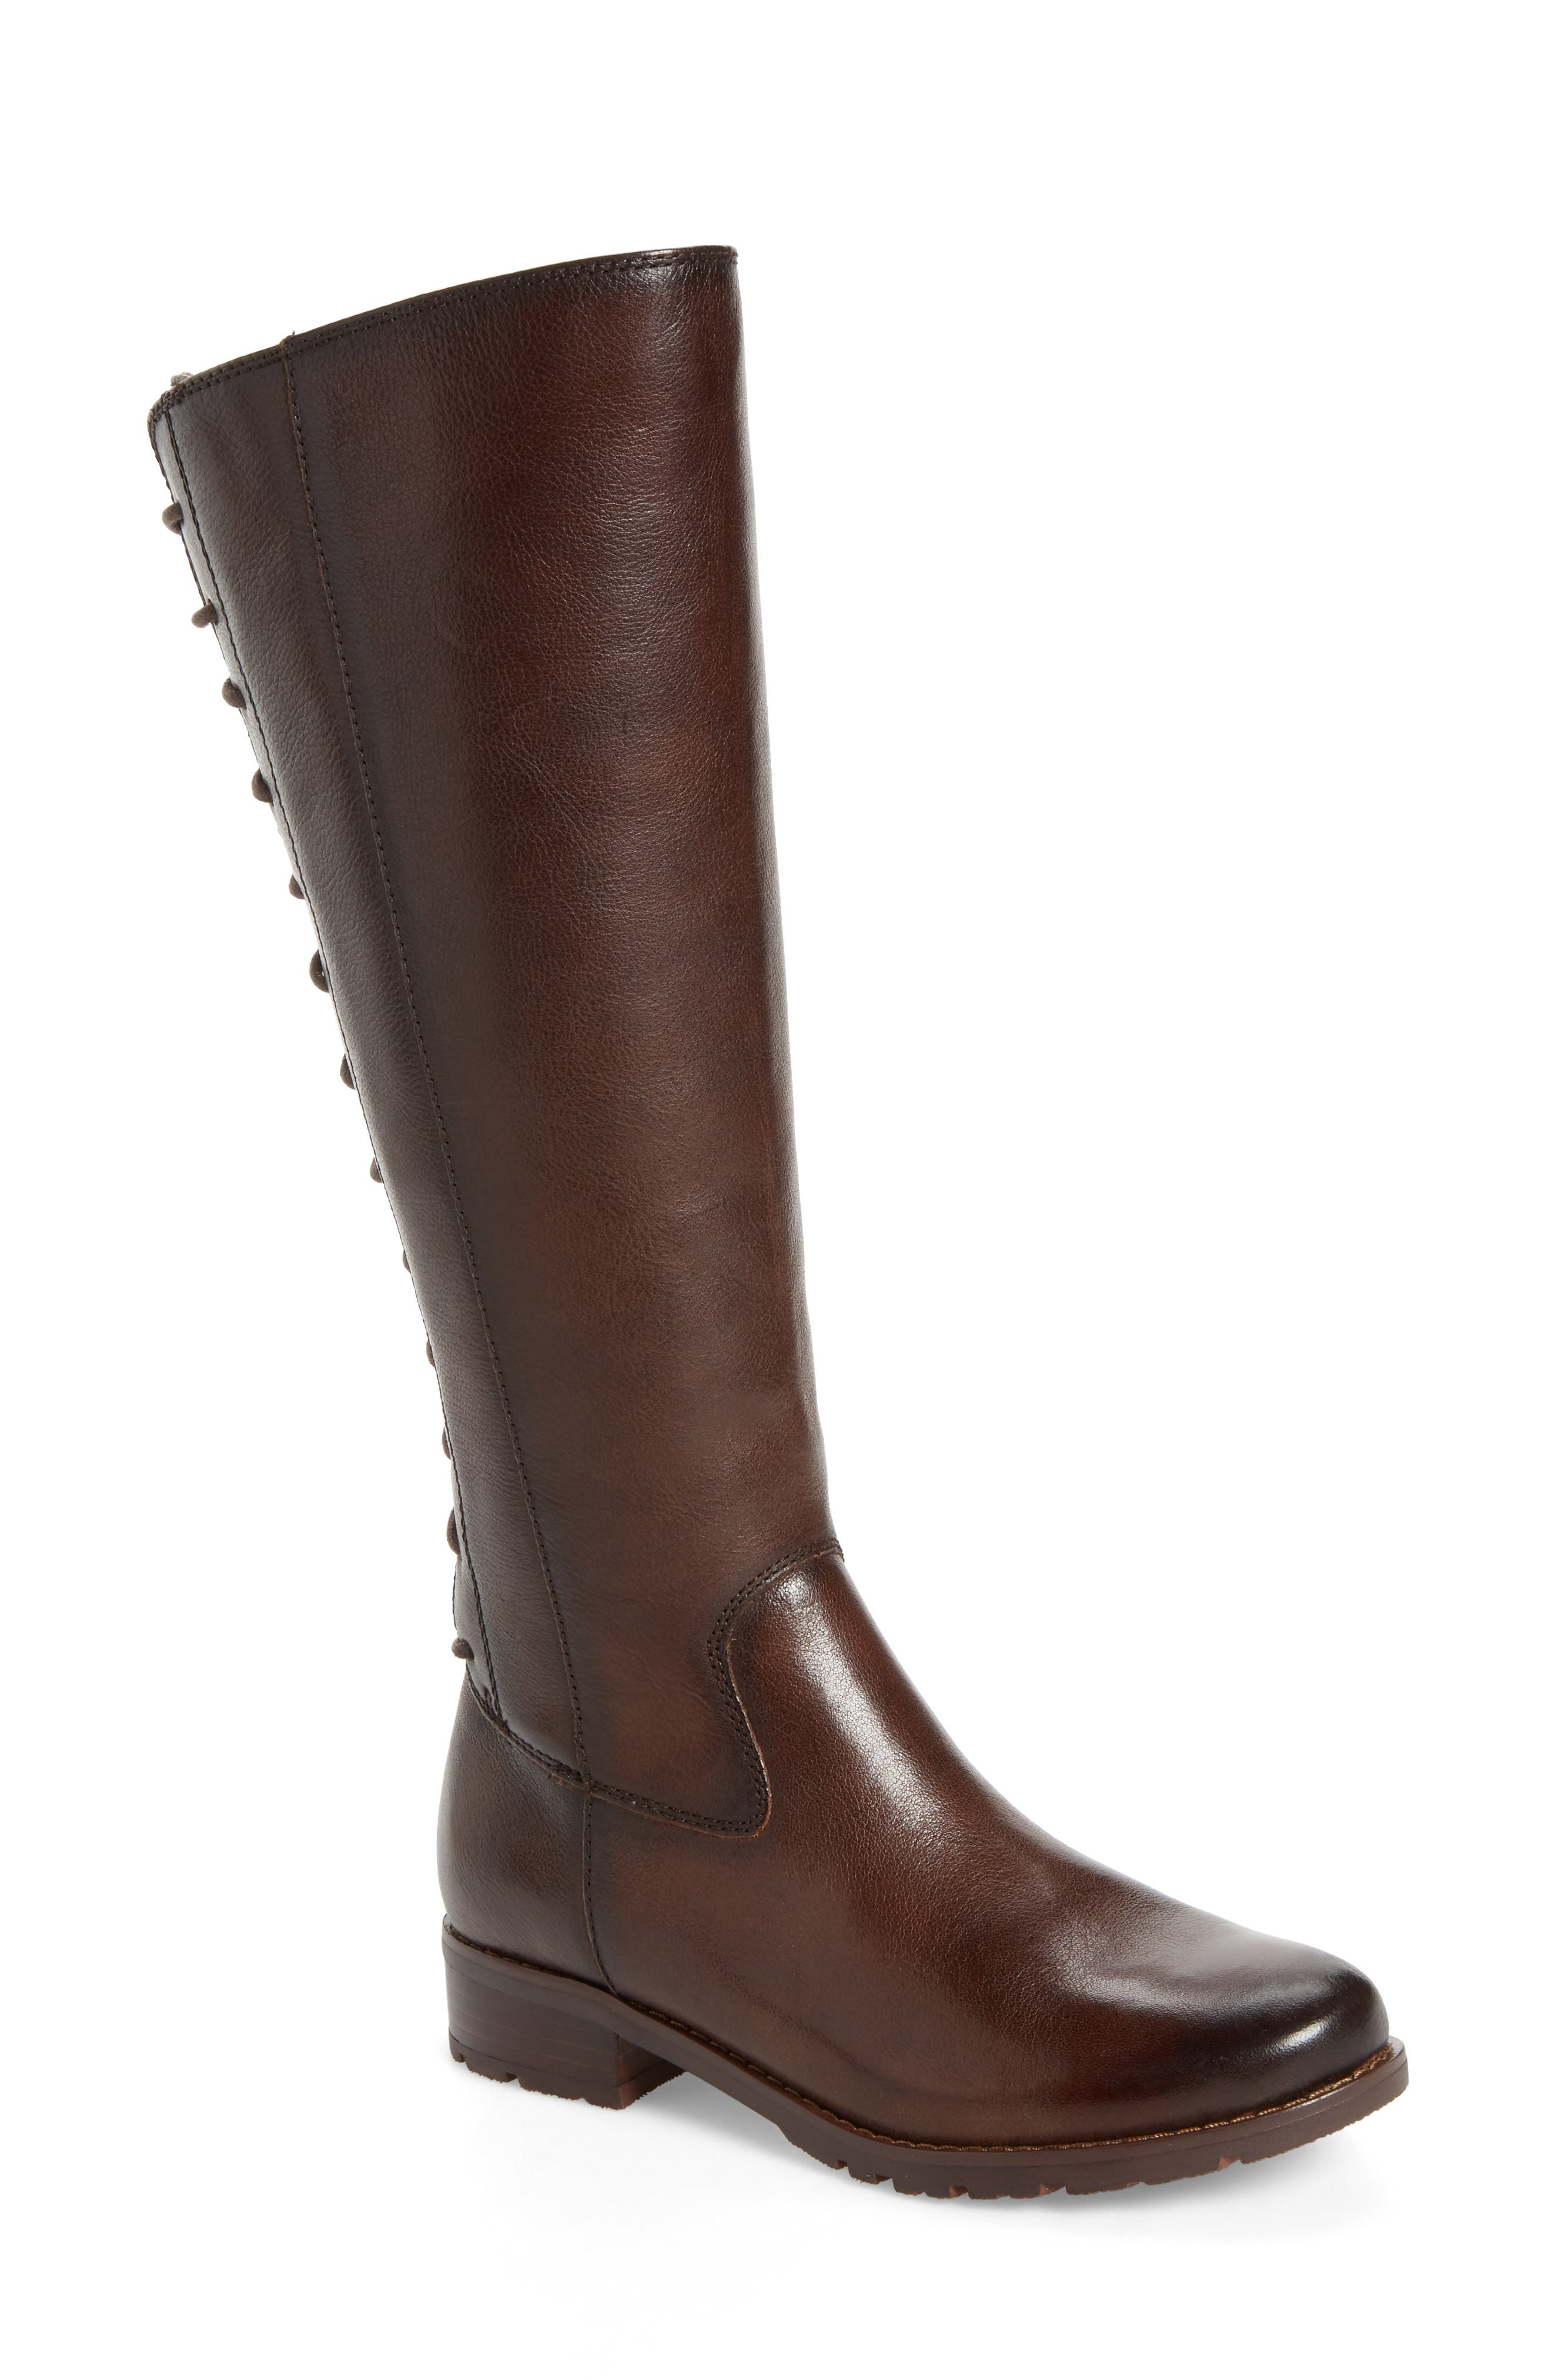 'Sharnell' Riding Boot,                             Main thumbnail 1, color,                             Aztec Brown Leather